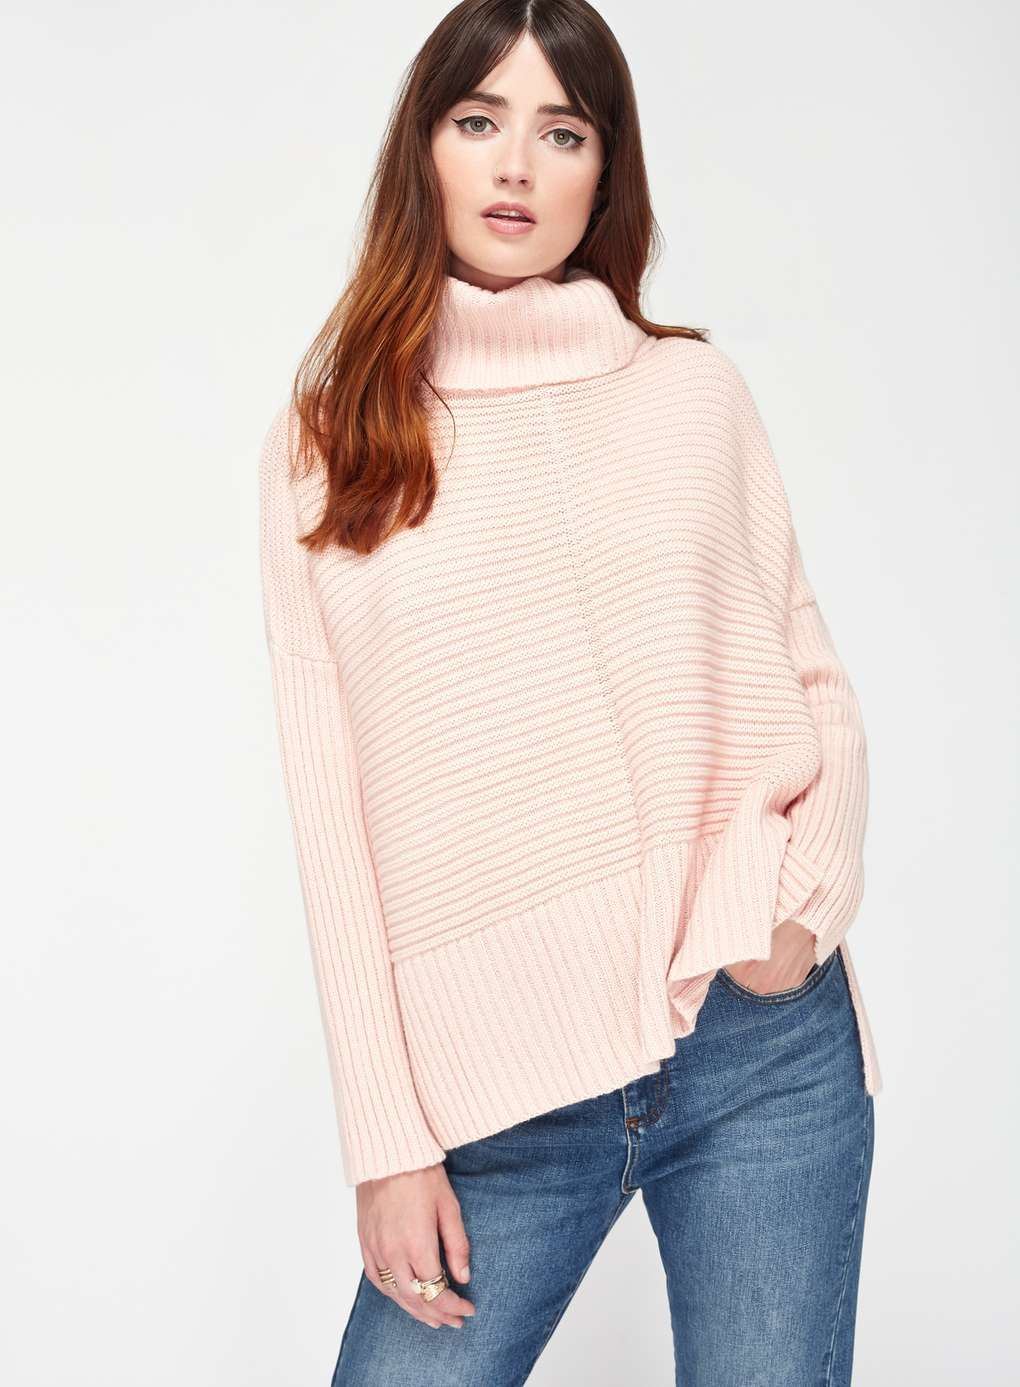 Knitted Europe Jumper Tops Chunky Selfridge Pink Clothing Miss 1q8Cv